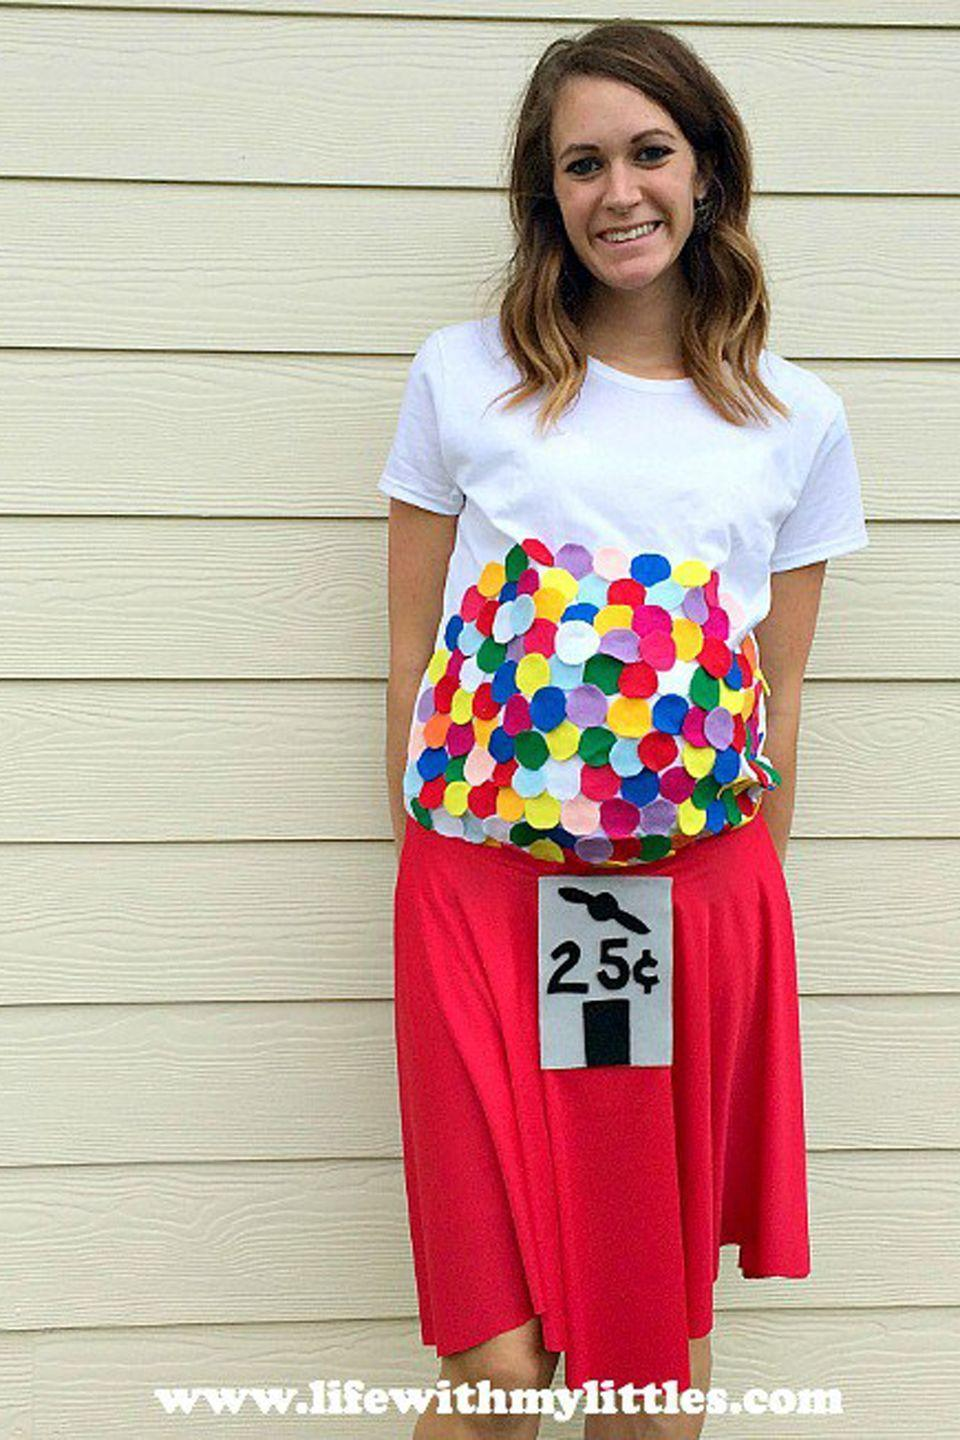 """<p>Blow everyone away with this adorable bubblegum machine ensemble.</p><p><strong>Get the tutorial at <a href=""""https://www.lifewithmylittles.com/diy-bubblegum-machine-maternity-costume/"""" rel=""""nofollow noopener"""" target=""""_blank"""" data-ylk=""""slk:Life With My Littles"""" class=""""link rapid-noclick-resp"""">Life With My Littles</a>.</strong></p><p><a class=""""link rapid-noclick-resp"""" href=""""https://www.amazon.com/Fabric-Assorted-Squares-Nonwoven-Patchwork/dp/B06XSW7TR2/?tag=syn-yahoo-20&ascsubtag=%5Bartid%7C10050.g.4972%5Bsrc%7Cyahoo-us"""" rel=""""nofollow noopener"""" target=""""_blank"""" data-ylk=""""slk:SHOP FELT"""">SHOP FELT</a> </p>"""